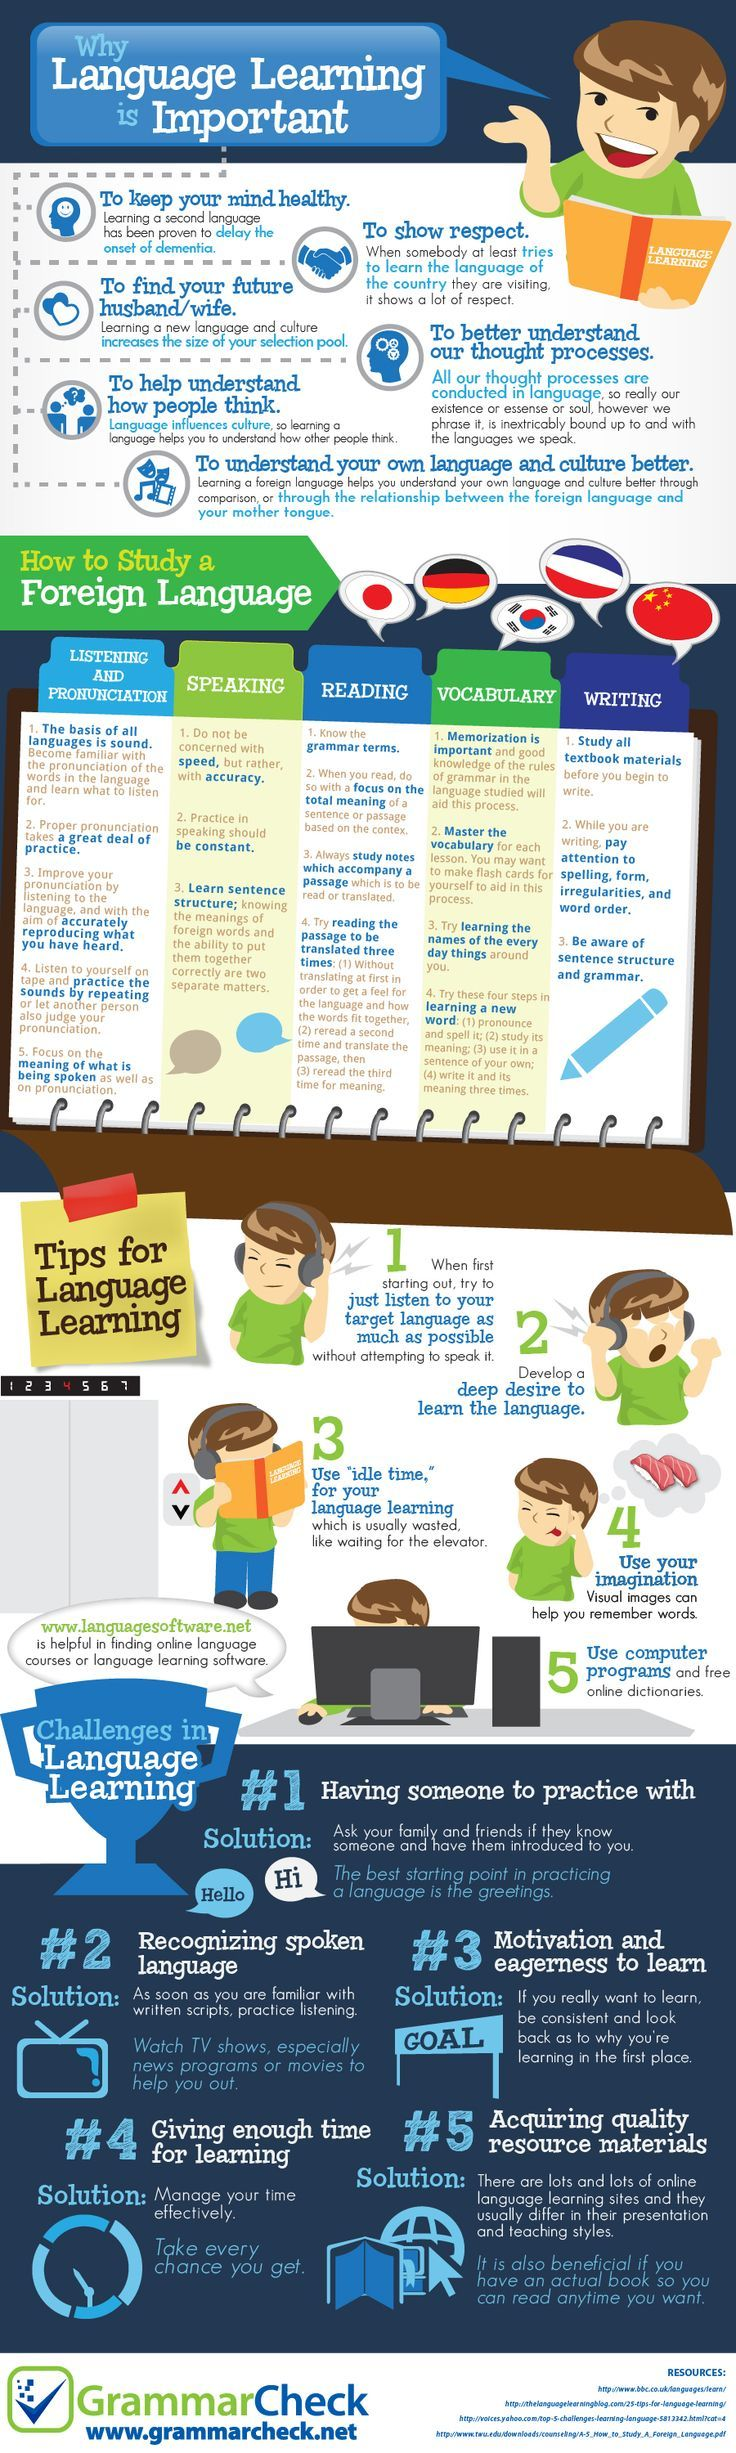 The Yellow Wallpaper Essay Why Language Learning Is Important Infographic  Elearning Infographicse Learning Infographics Essay Writing Paper also Essay About Science And Technology  Best How To Learn A Language Images On Pinterest  Activities  Genetically Modified Food Essay Thesis